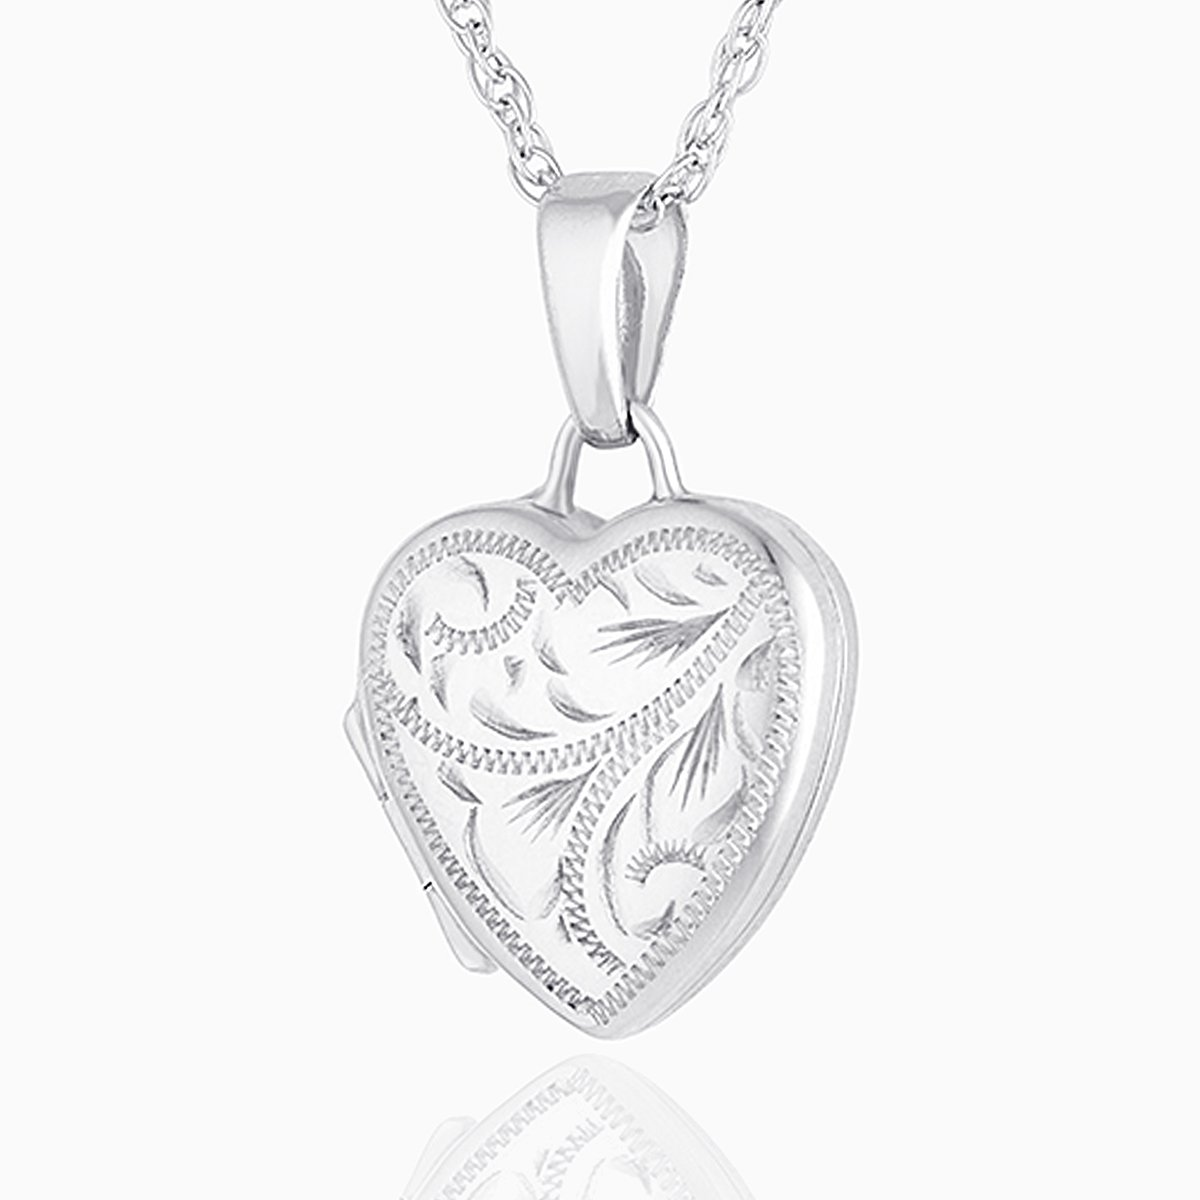 Product title: White Gold Engraved Petite Heart Locket, product type: Locket